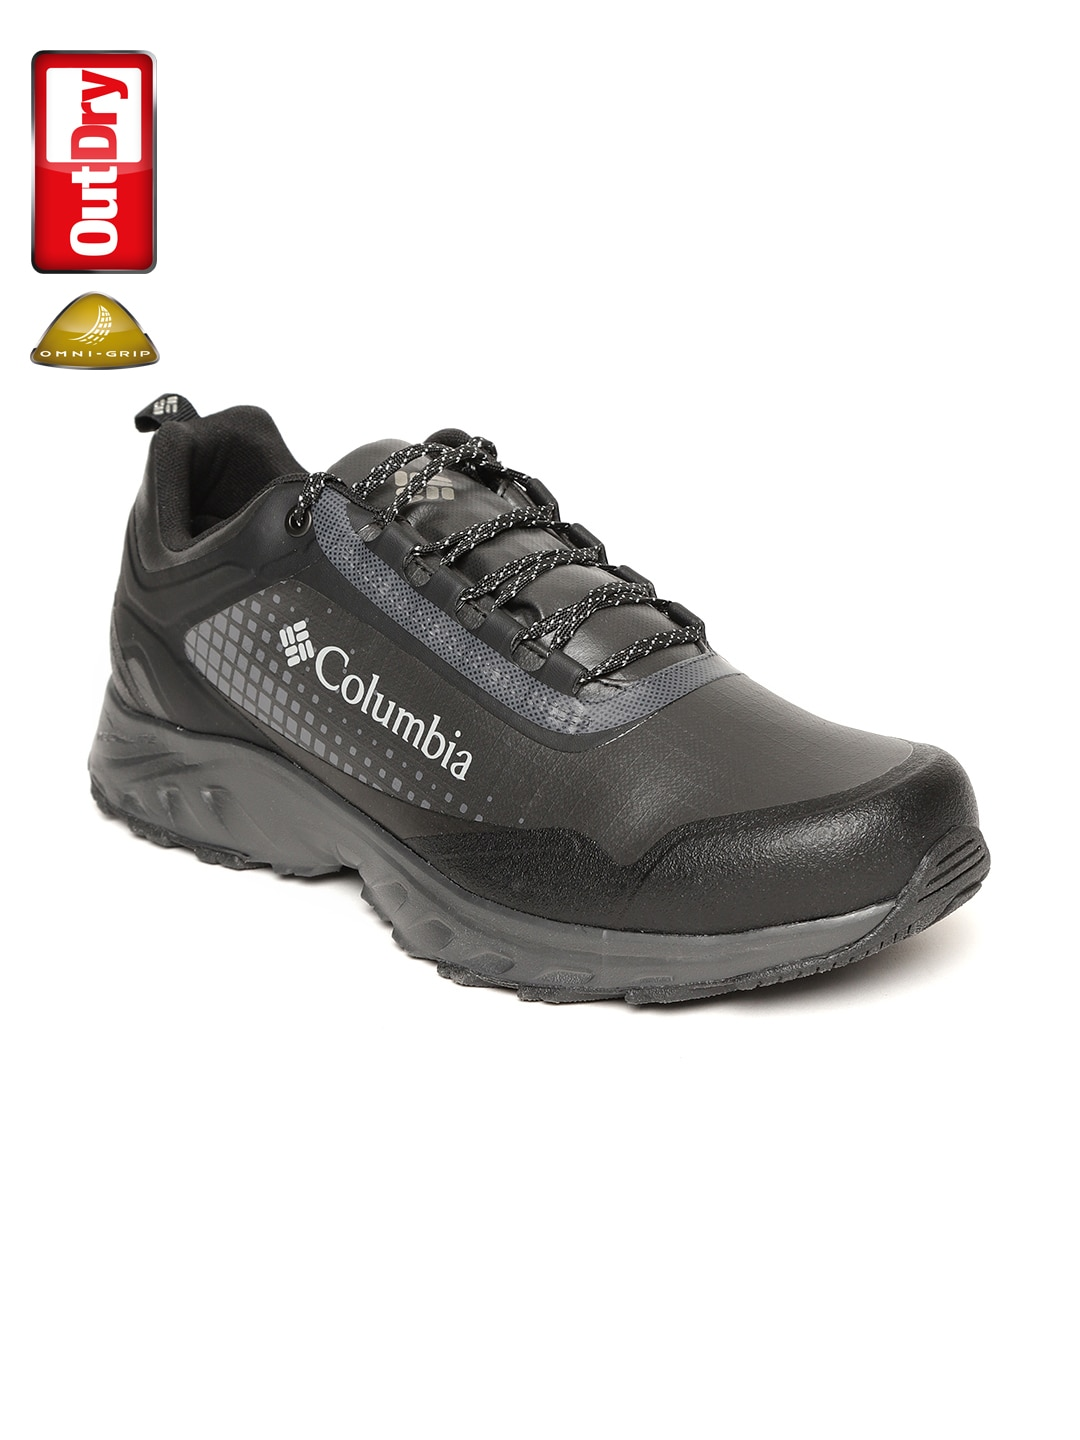 new style 2d04a 3e537 Men Running Shoes - Buy Men Running Shoes Online in India